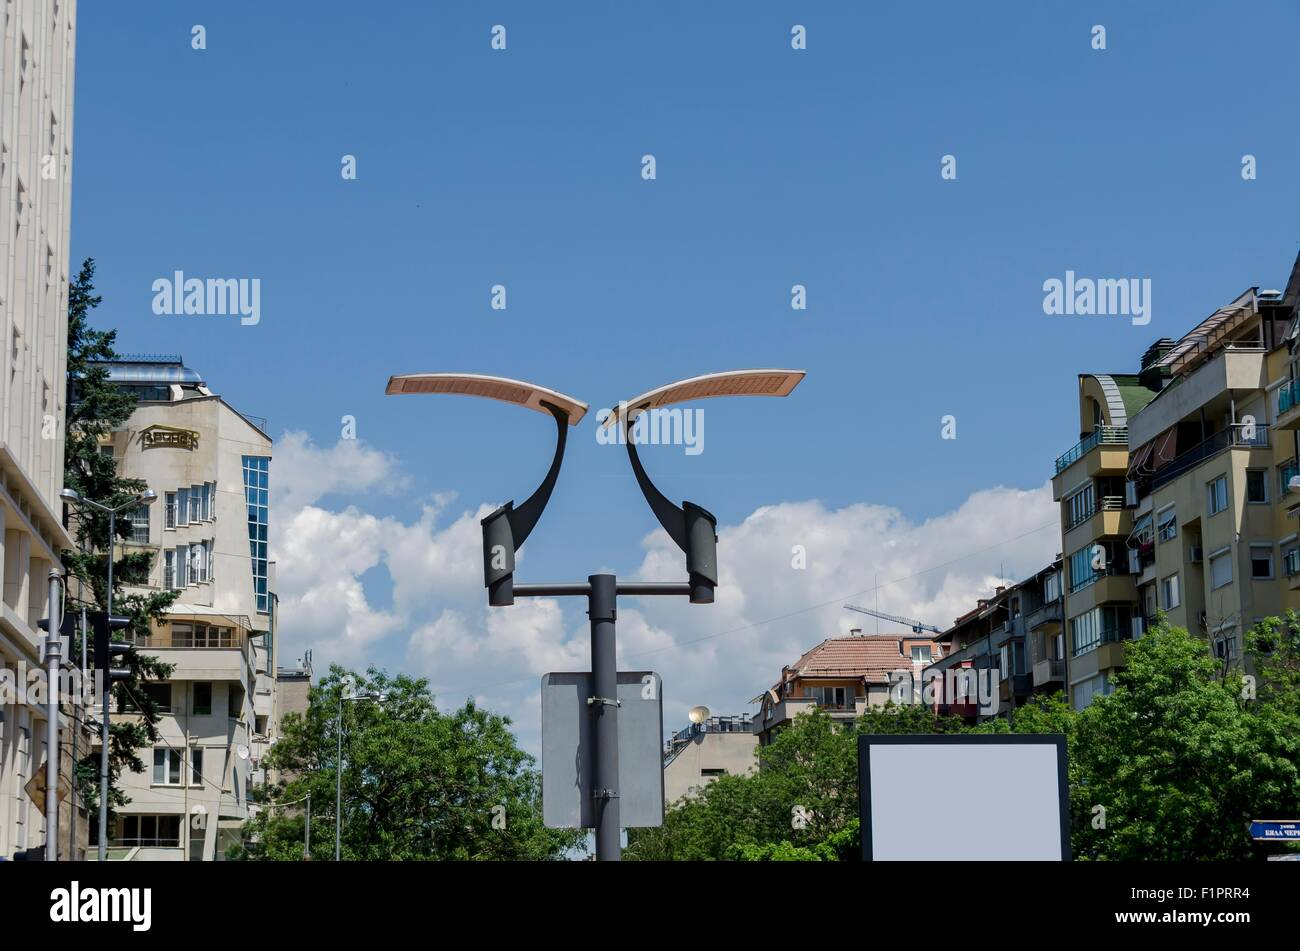 Lighting fixture with solar battery in Park, Sofia Bulgaria - Stock Image